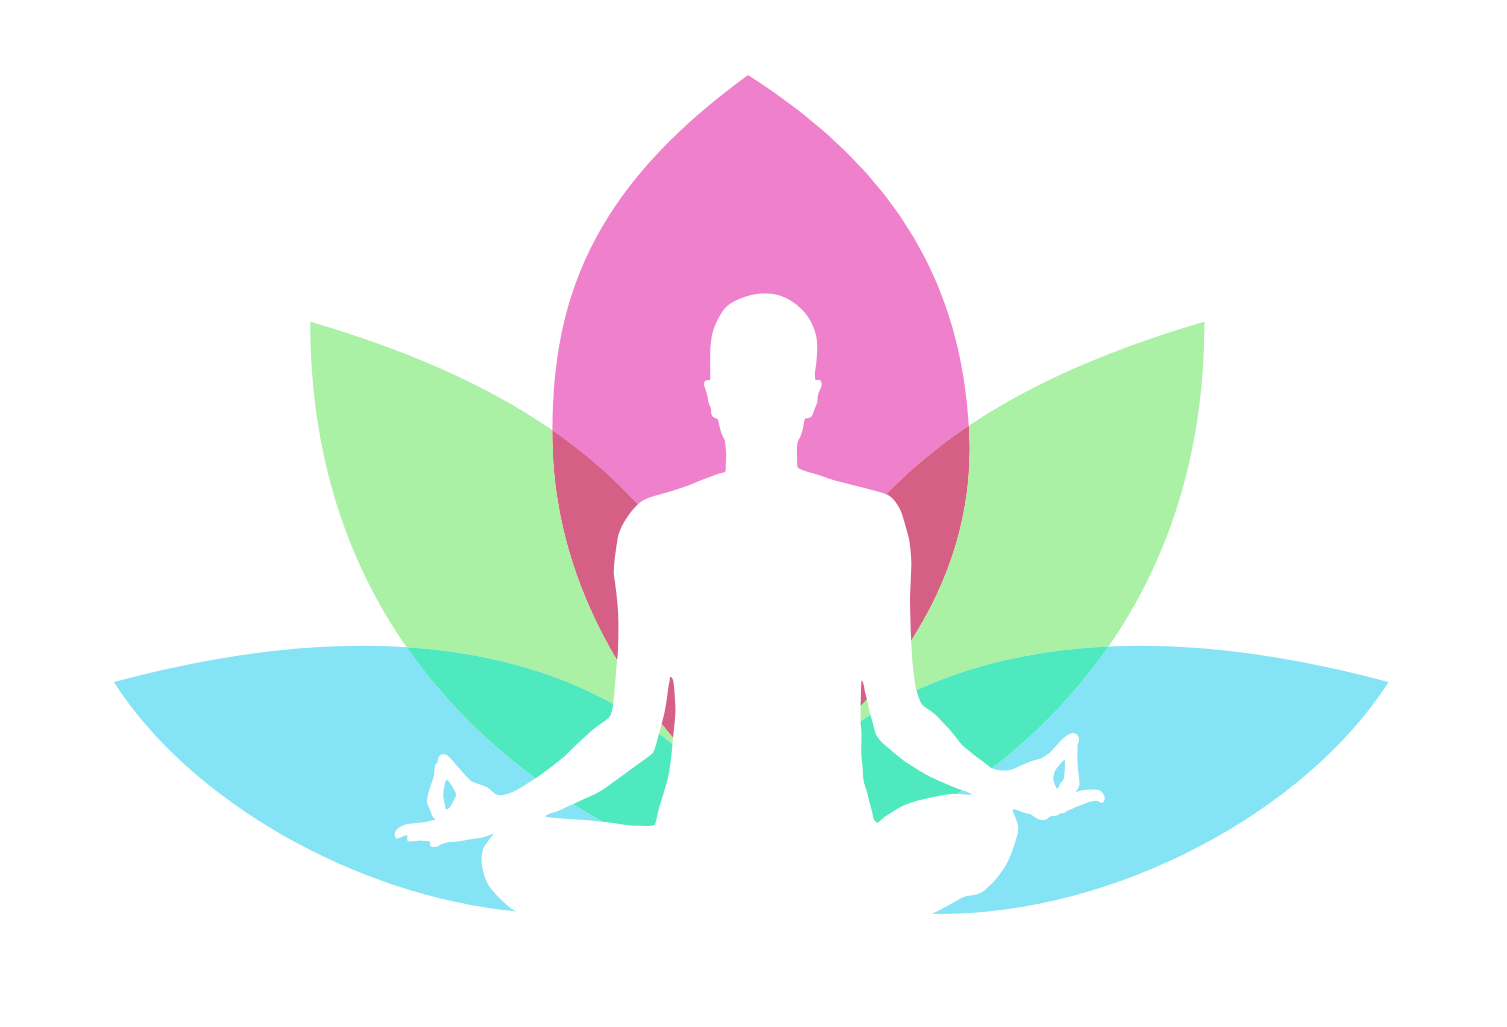 Yoga logo png. Compassion in action sidebar